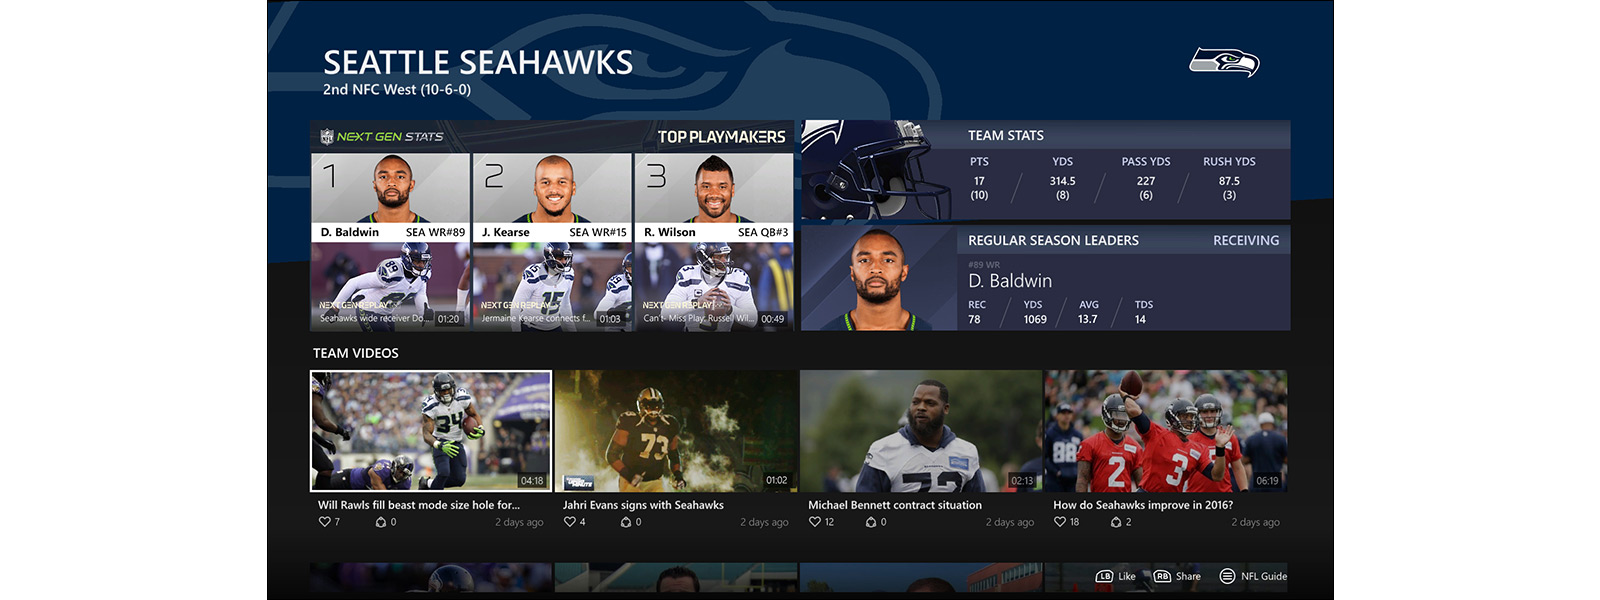 NFL Highlights on the NFL app on Xbox One